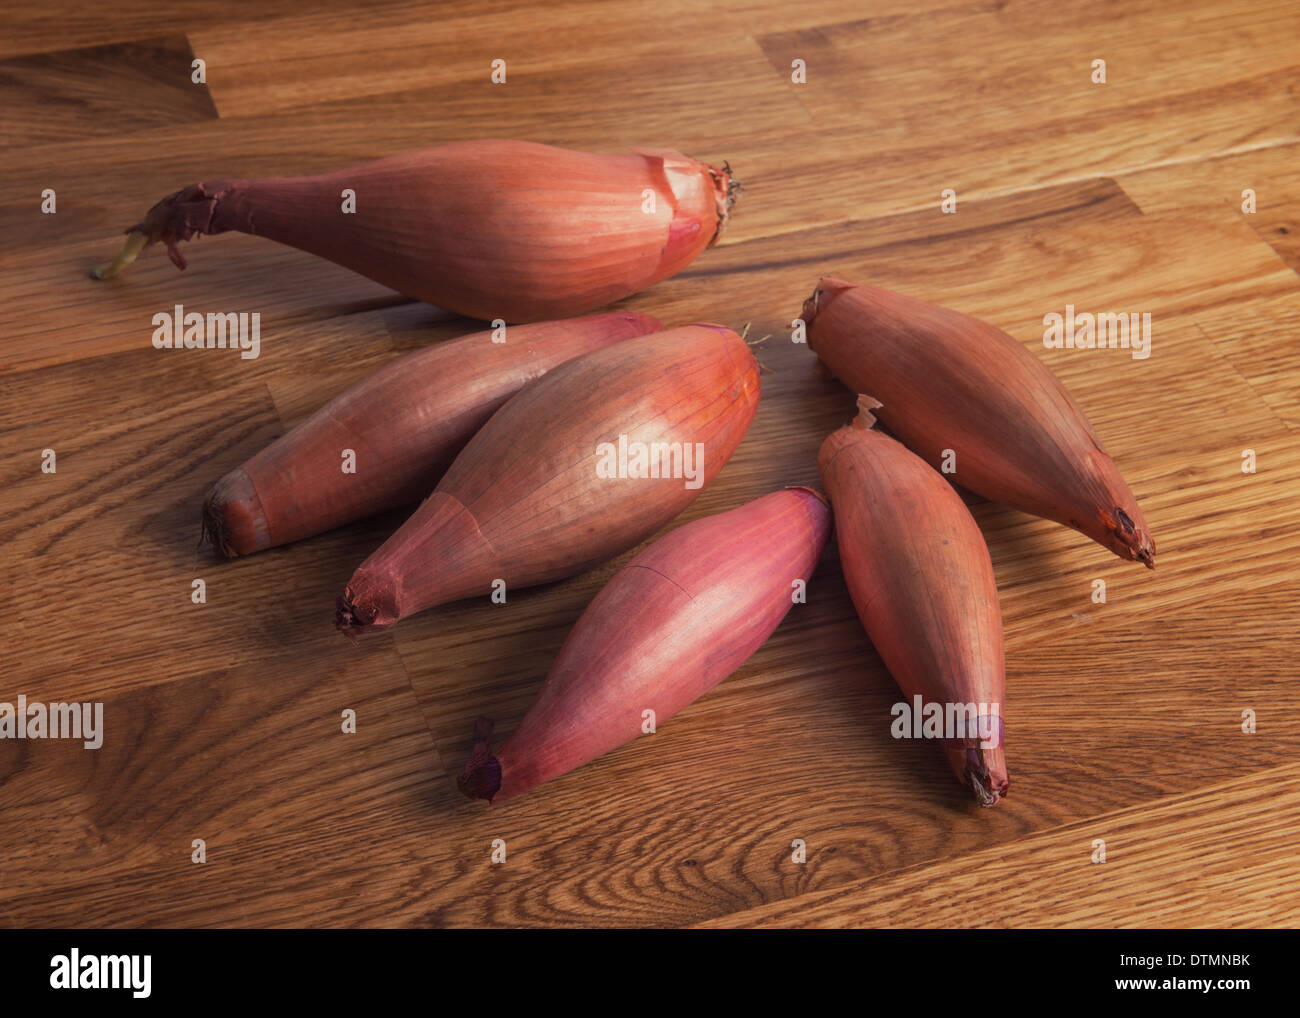 Some shallots on an oak worktop. Stock Photo